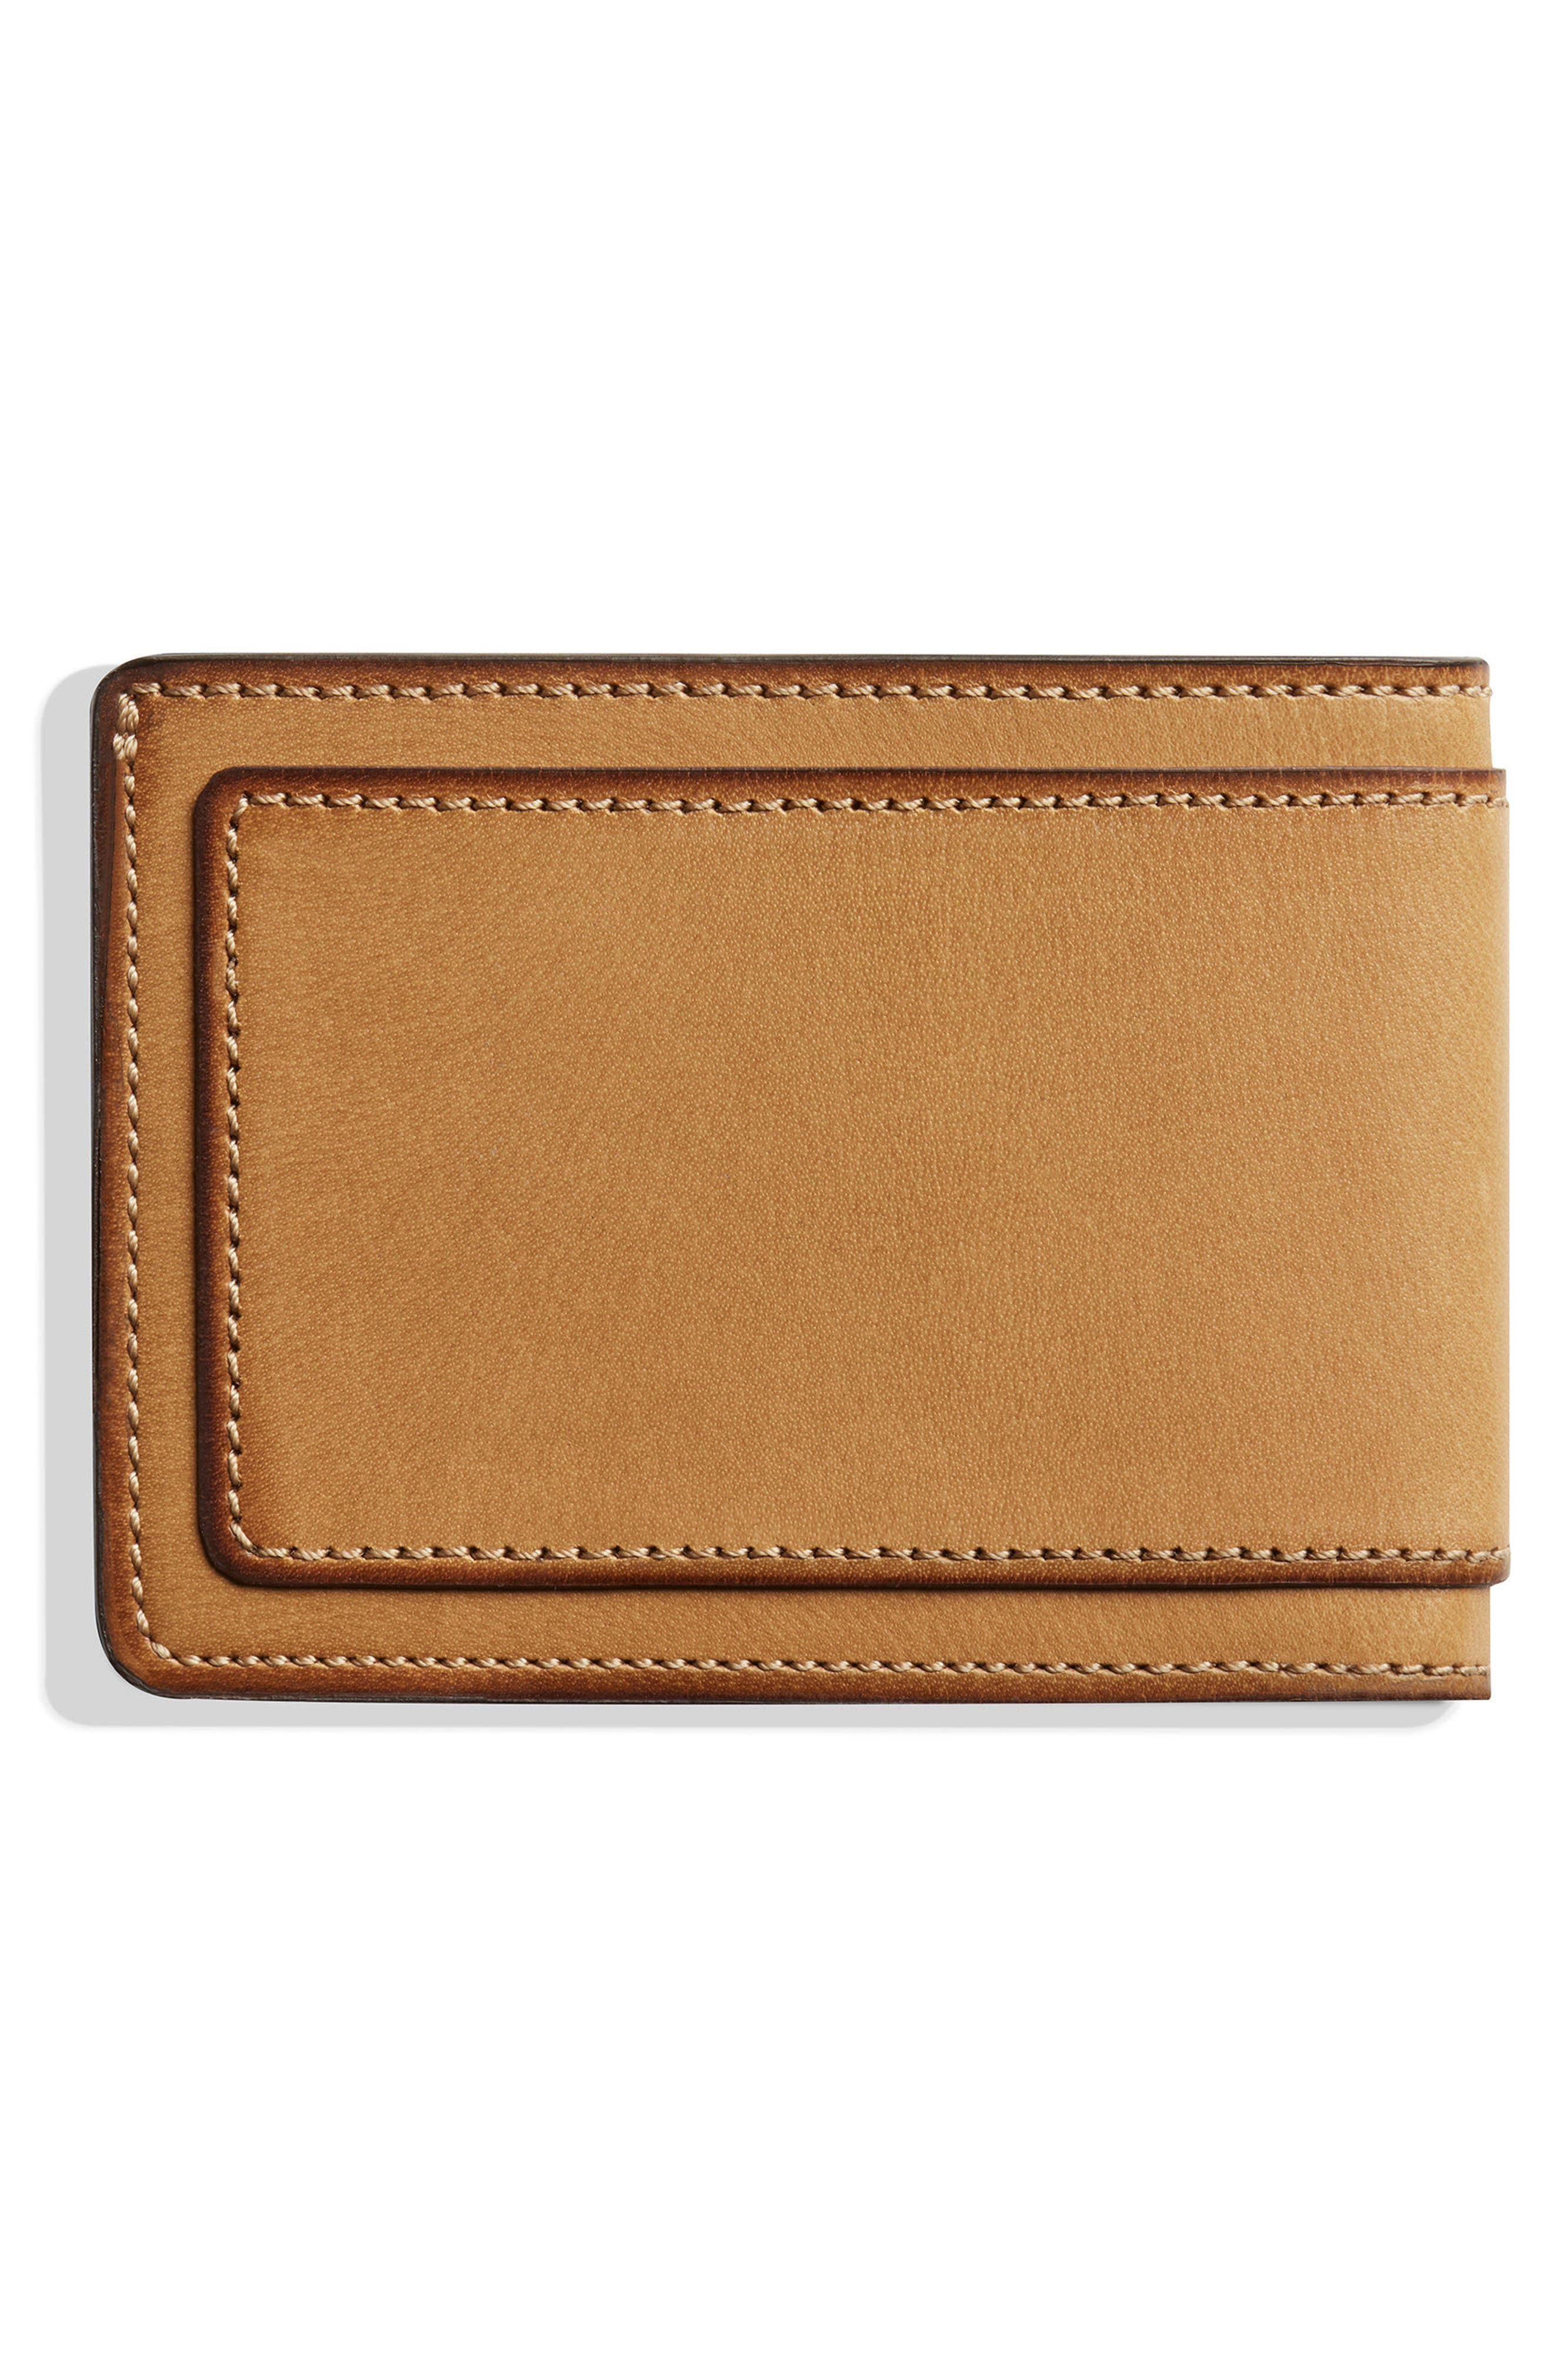 Outlaw Wallet,                             Alternate thumbnail 3, color,                             Sand